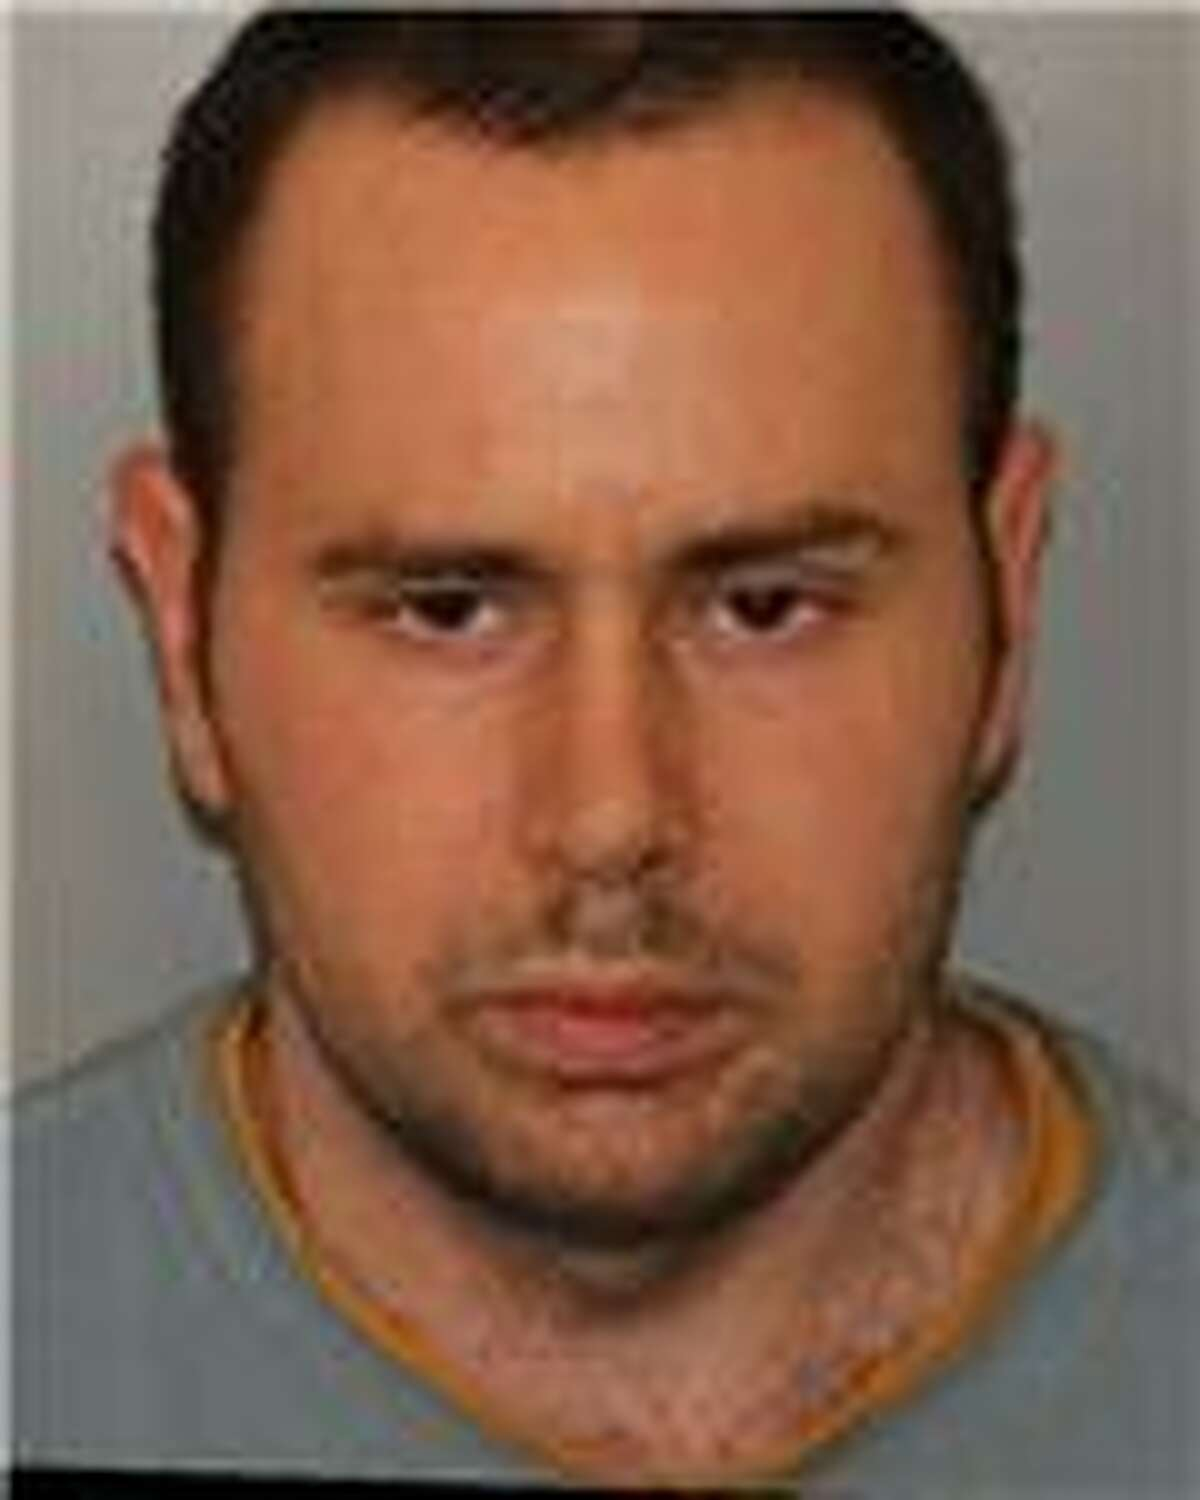 Michael Lemperle (State Police photo)